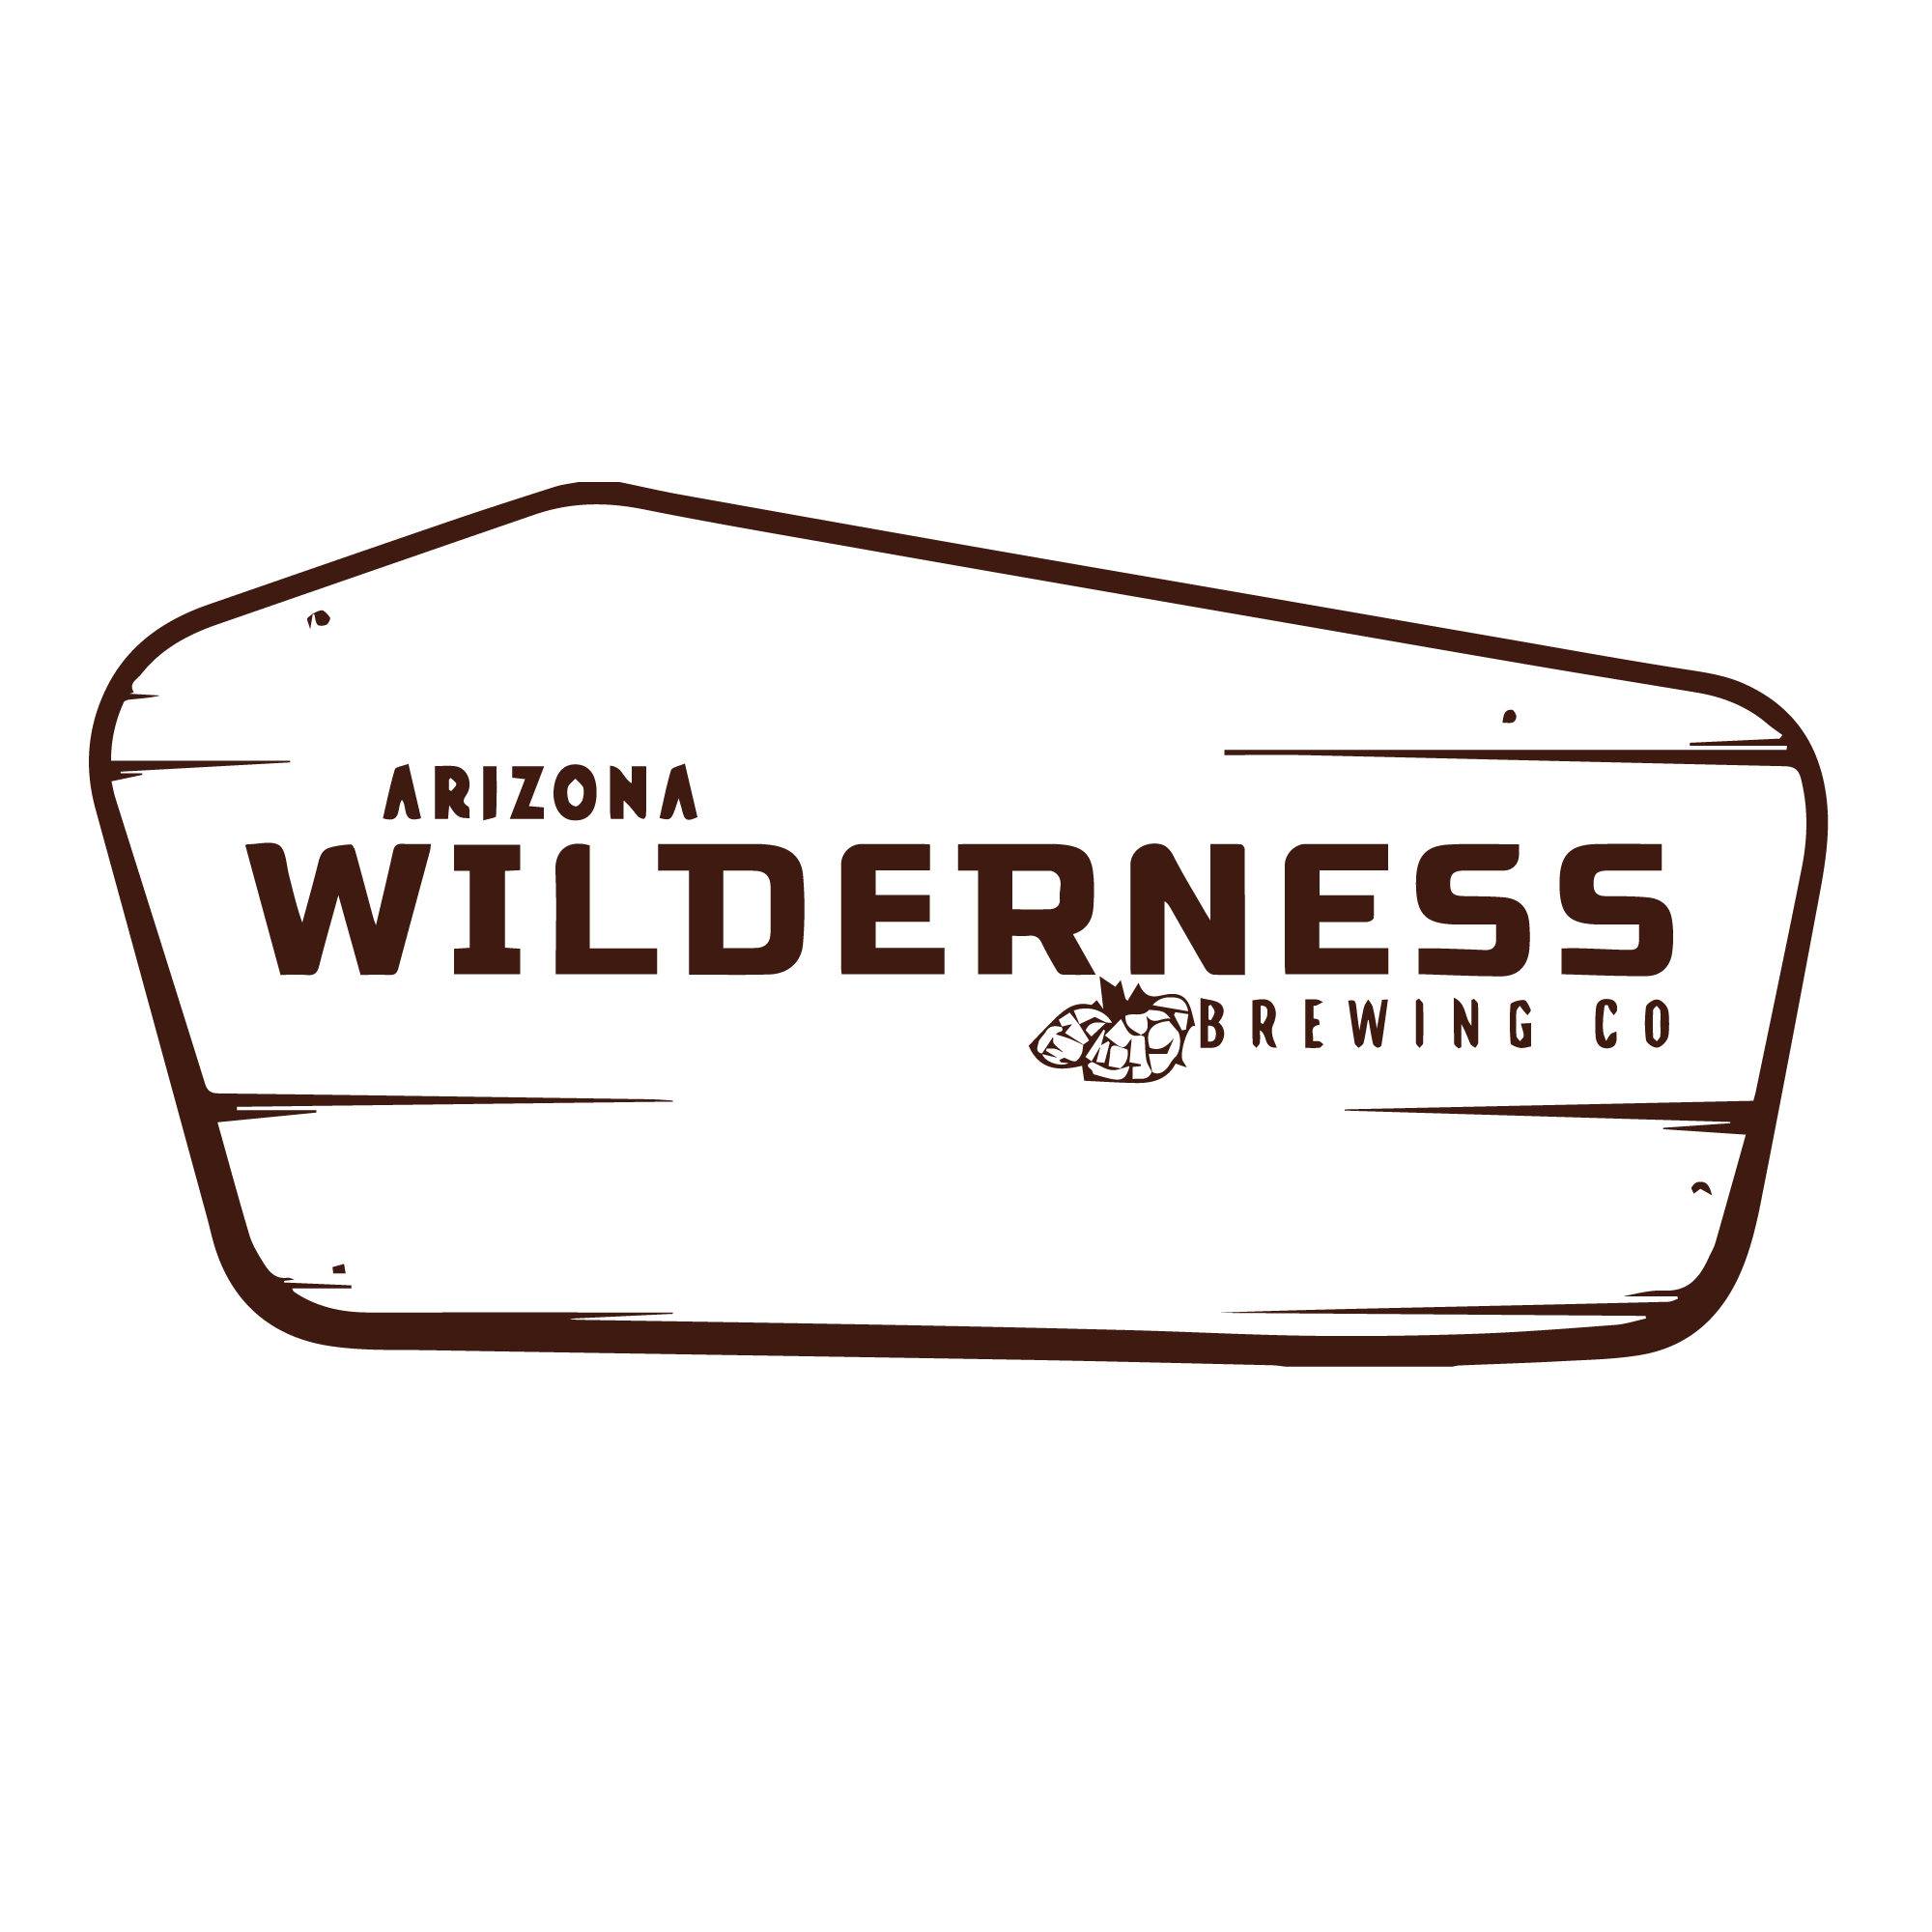 AZ Wilderness.png